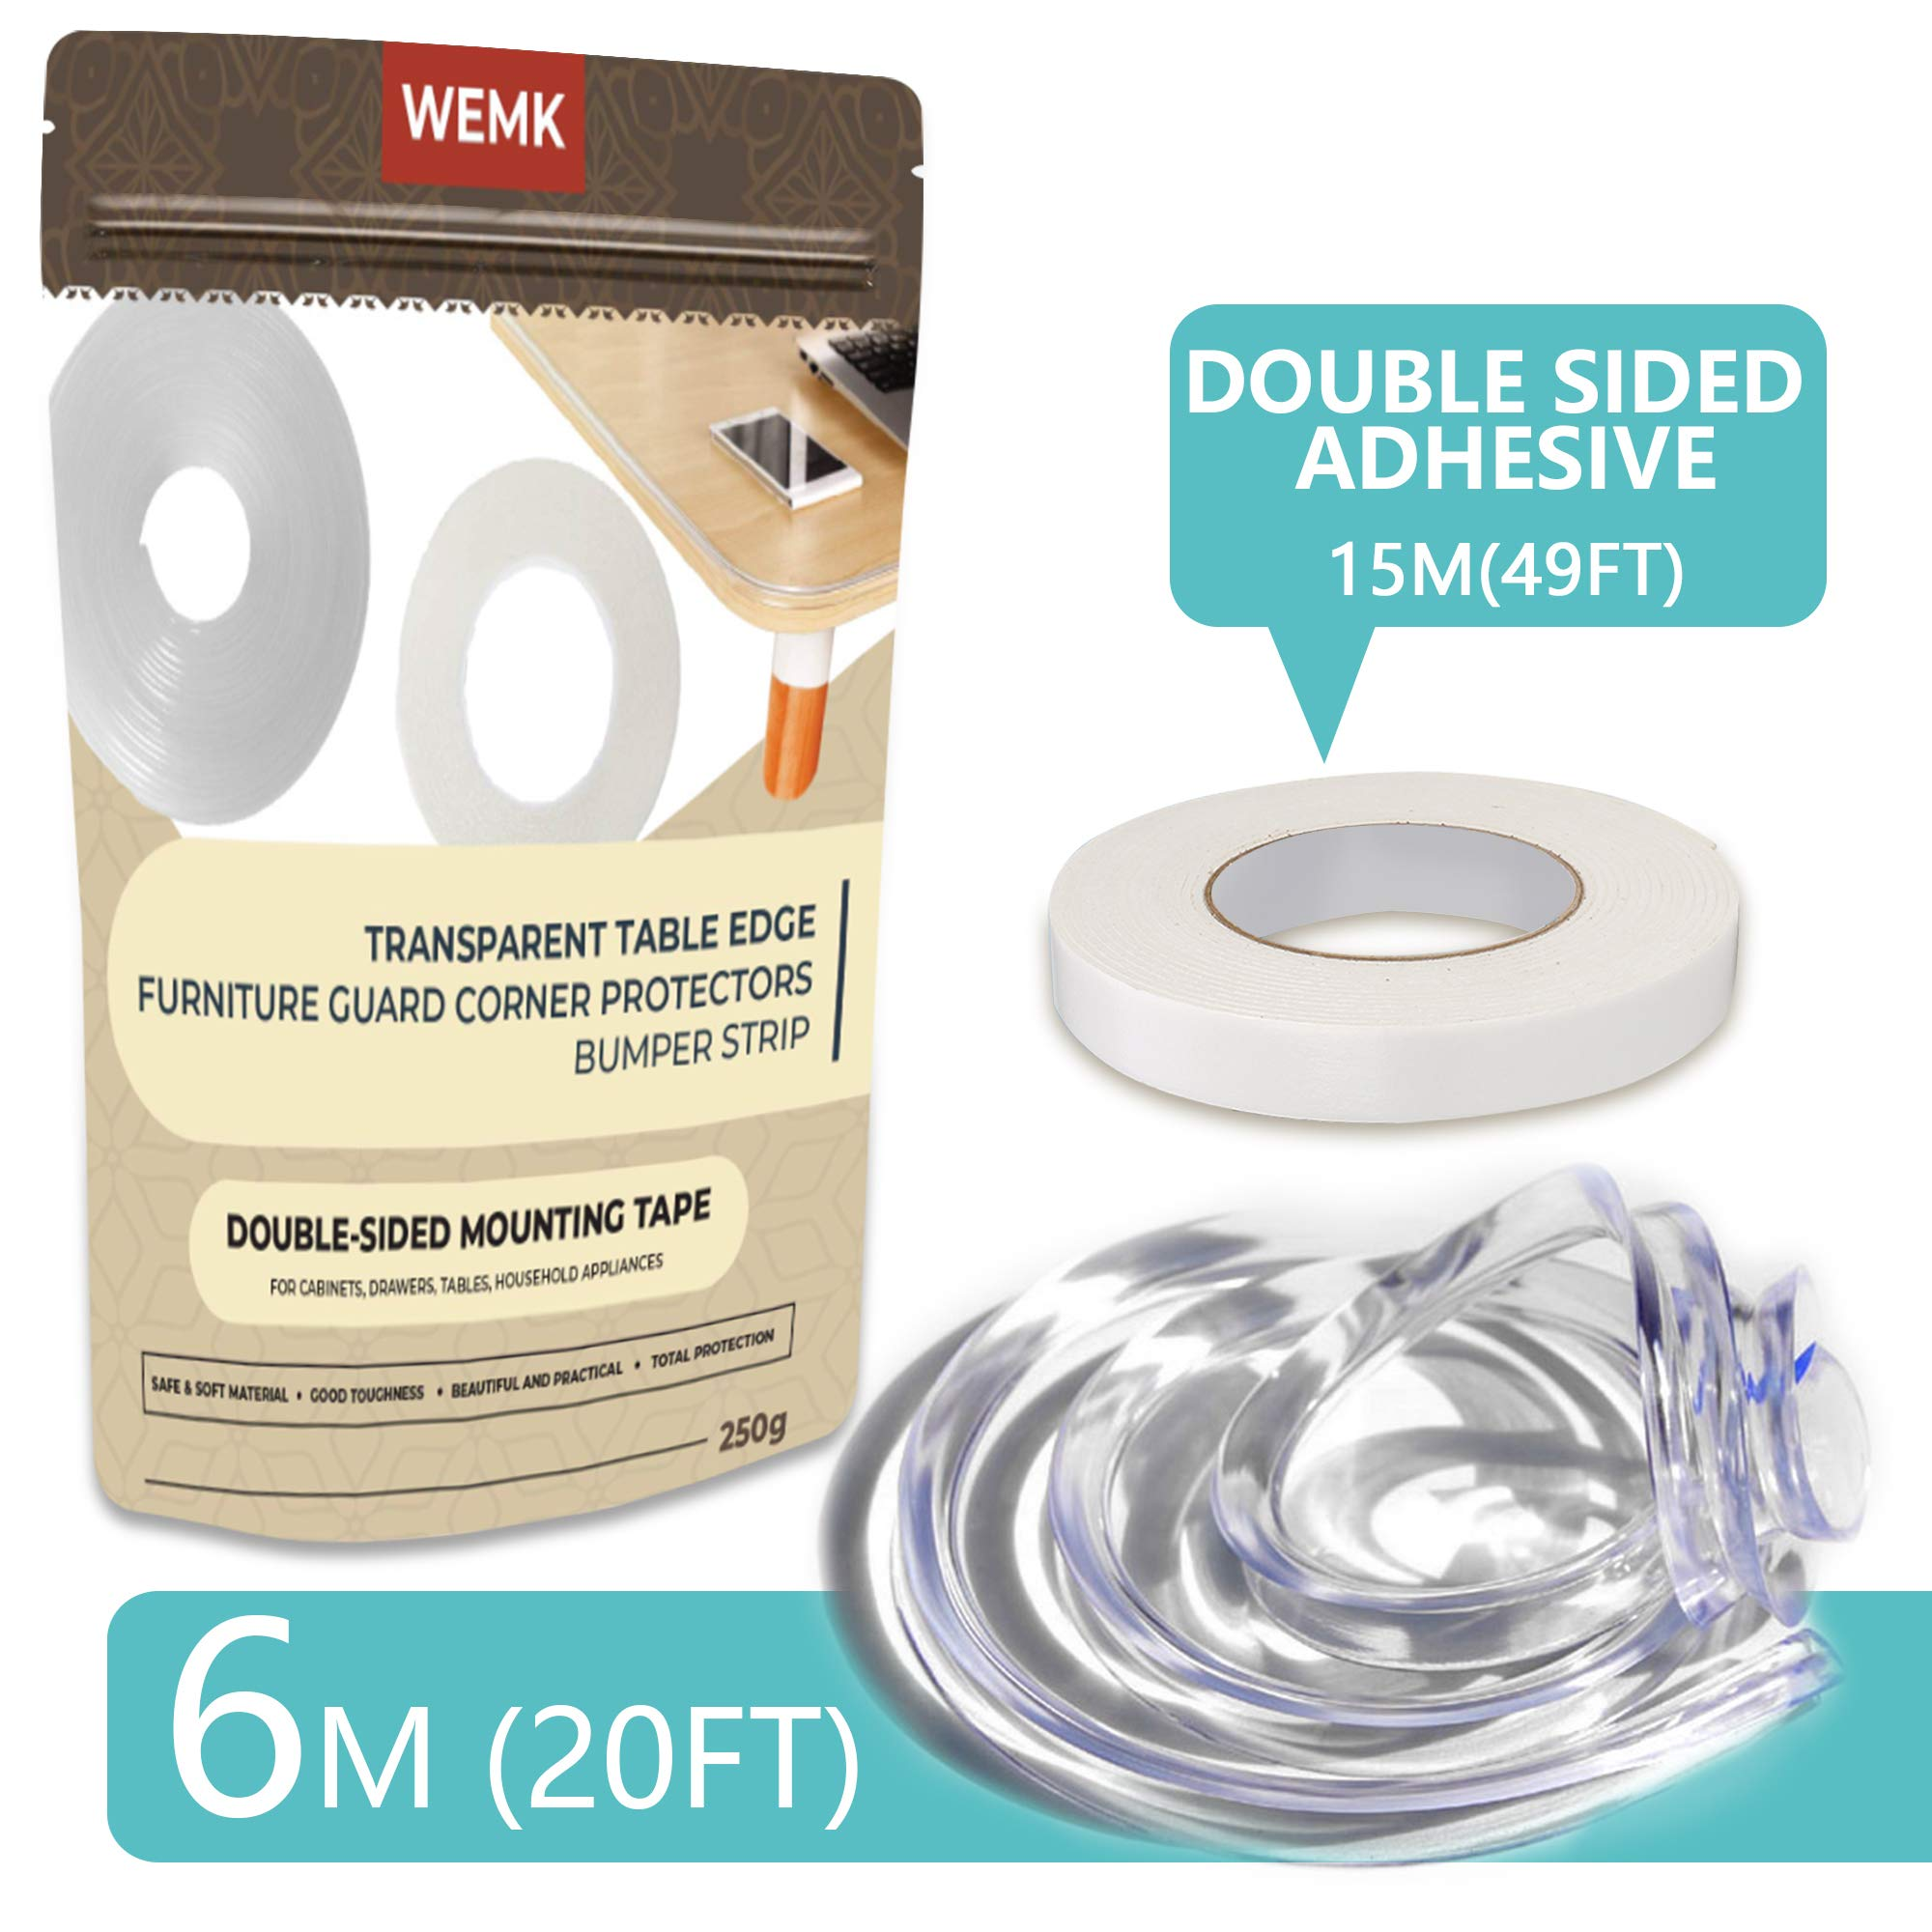 Wemk New Transparent Table Edge Furniture Corner Protectors, 20ft Widen & Thicken Baby Proofing Edge Safety Bumpers Strip, Safety for Child by Wemk (Image #2)